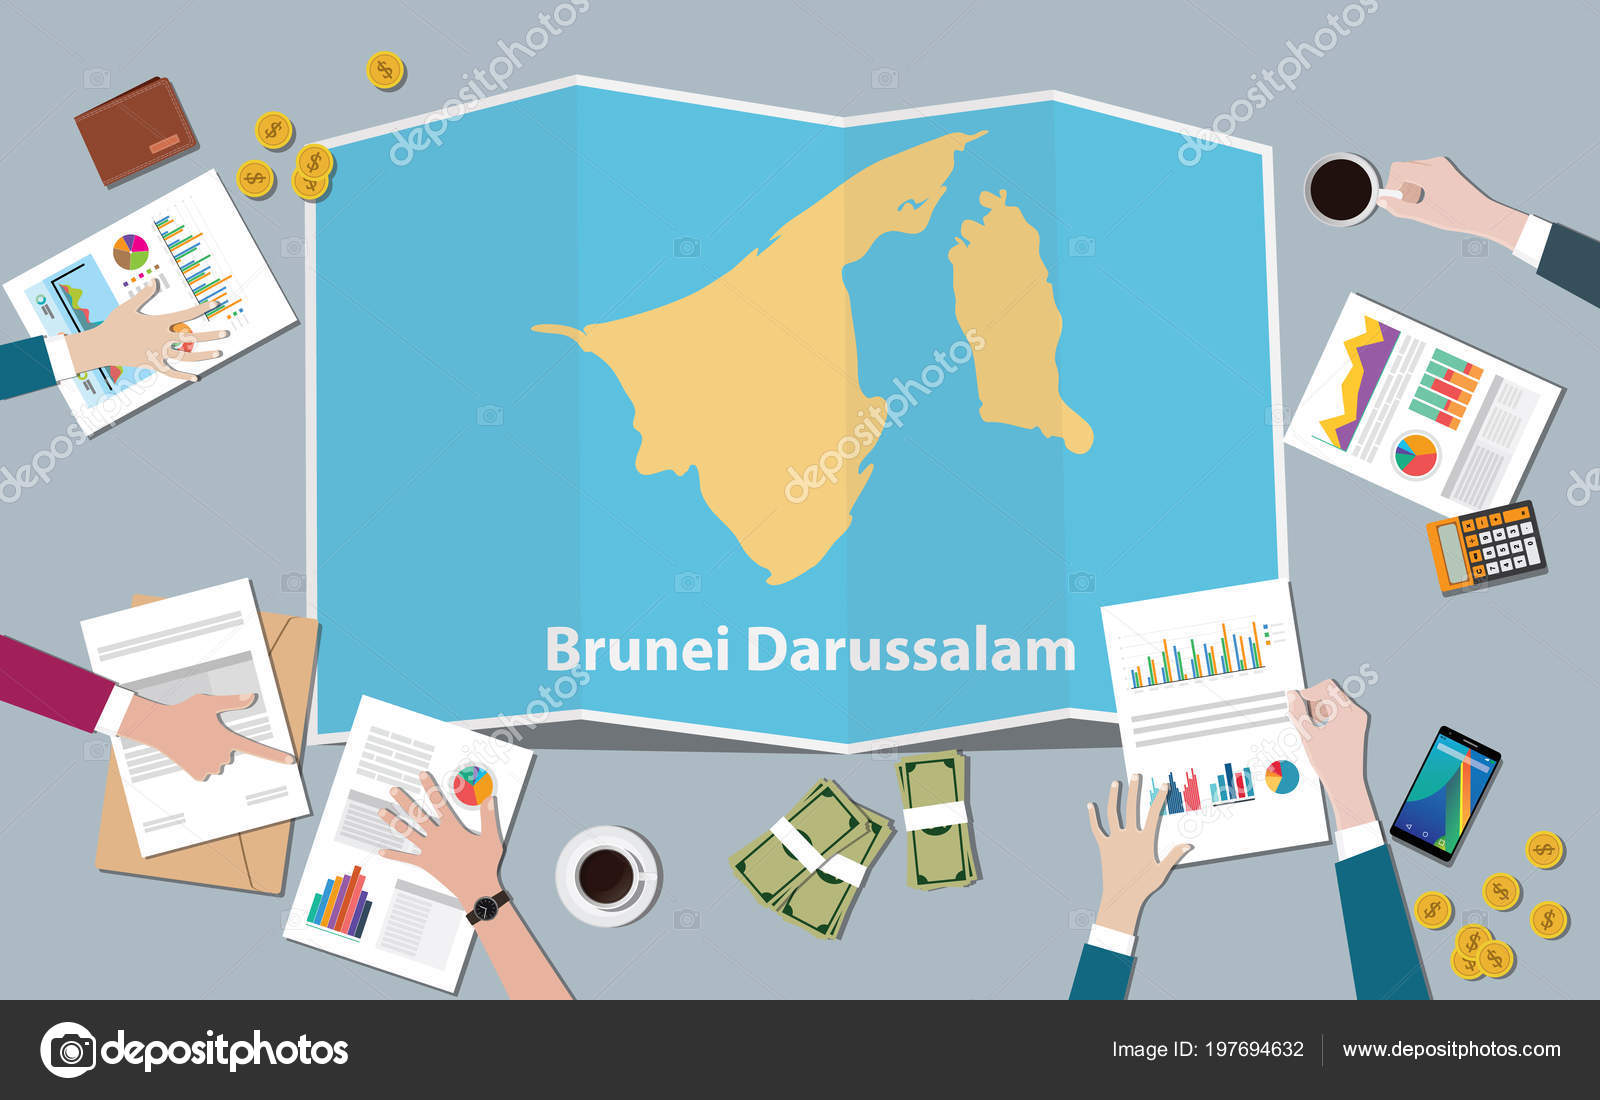 Brunei Darussalam Country Growth Nation Team Discuss Fold